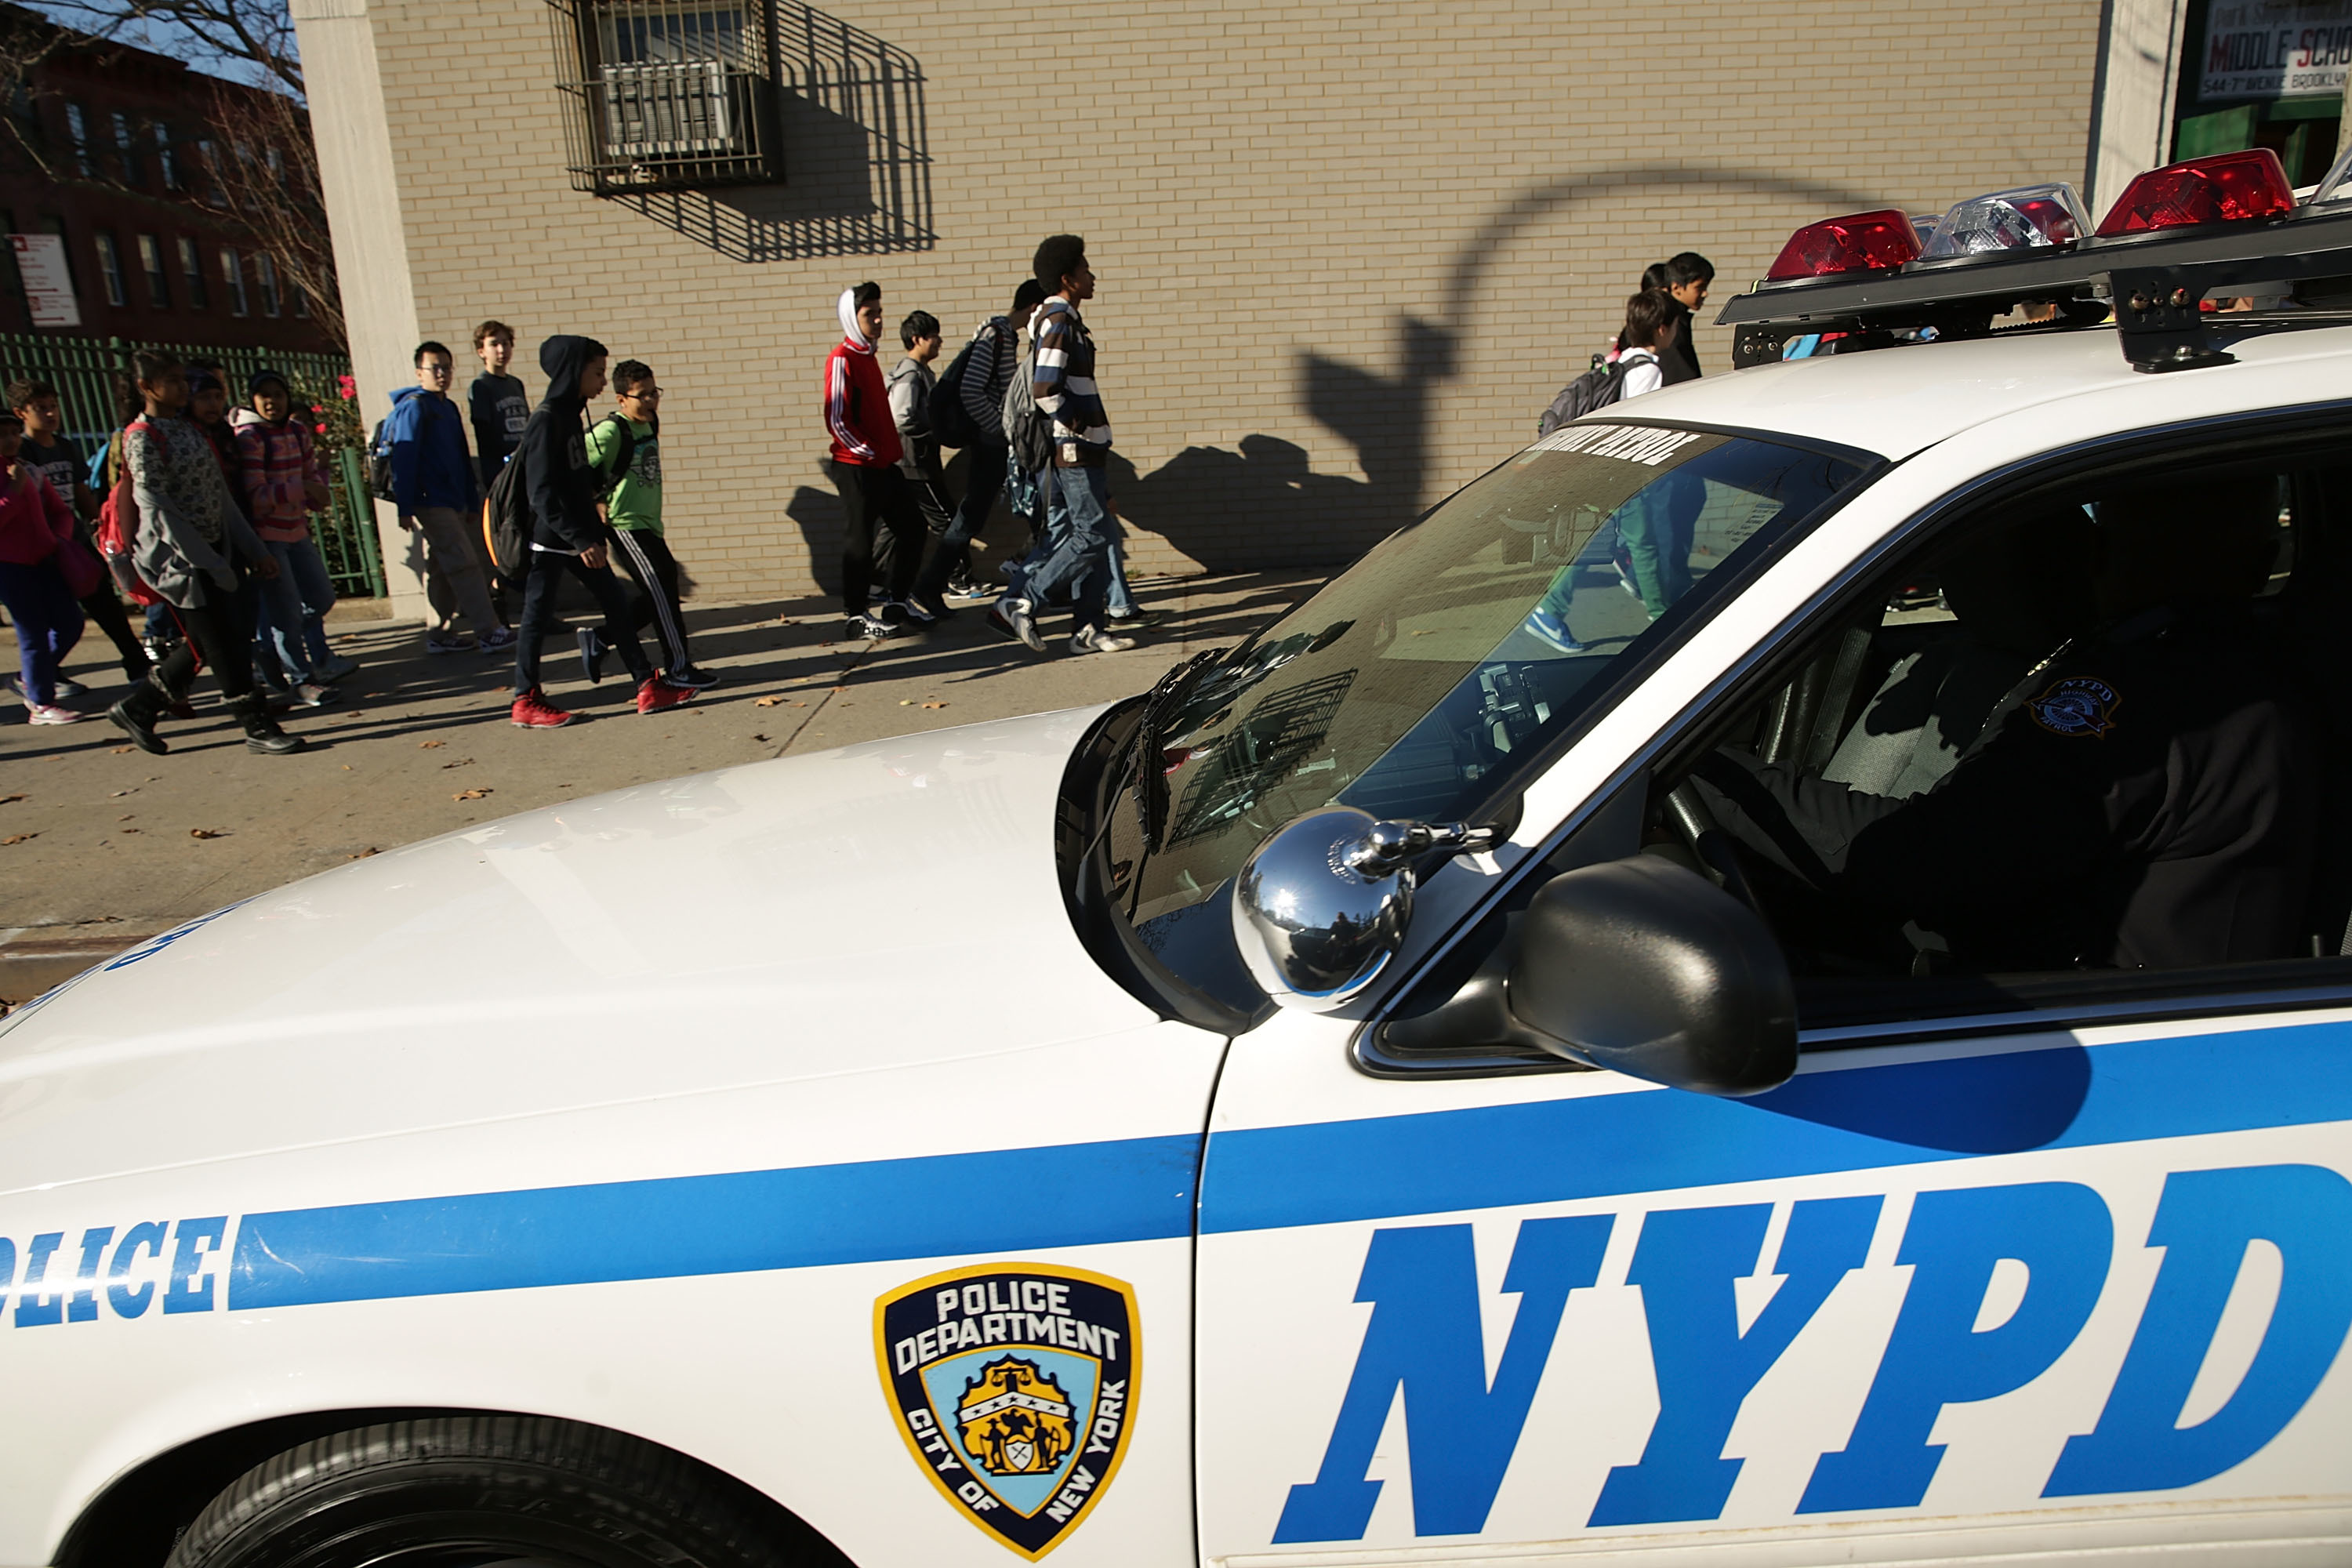 A New York Police Department cruiser sits in the foreground as students walk past on the sidewalk.